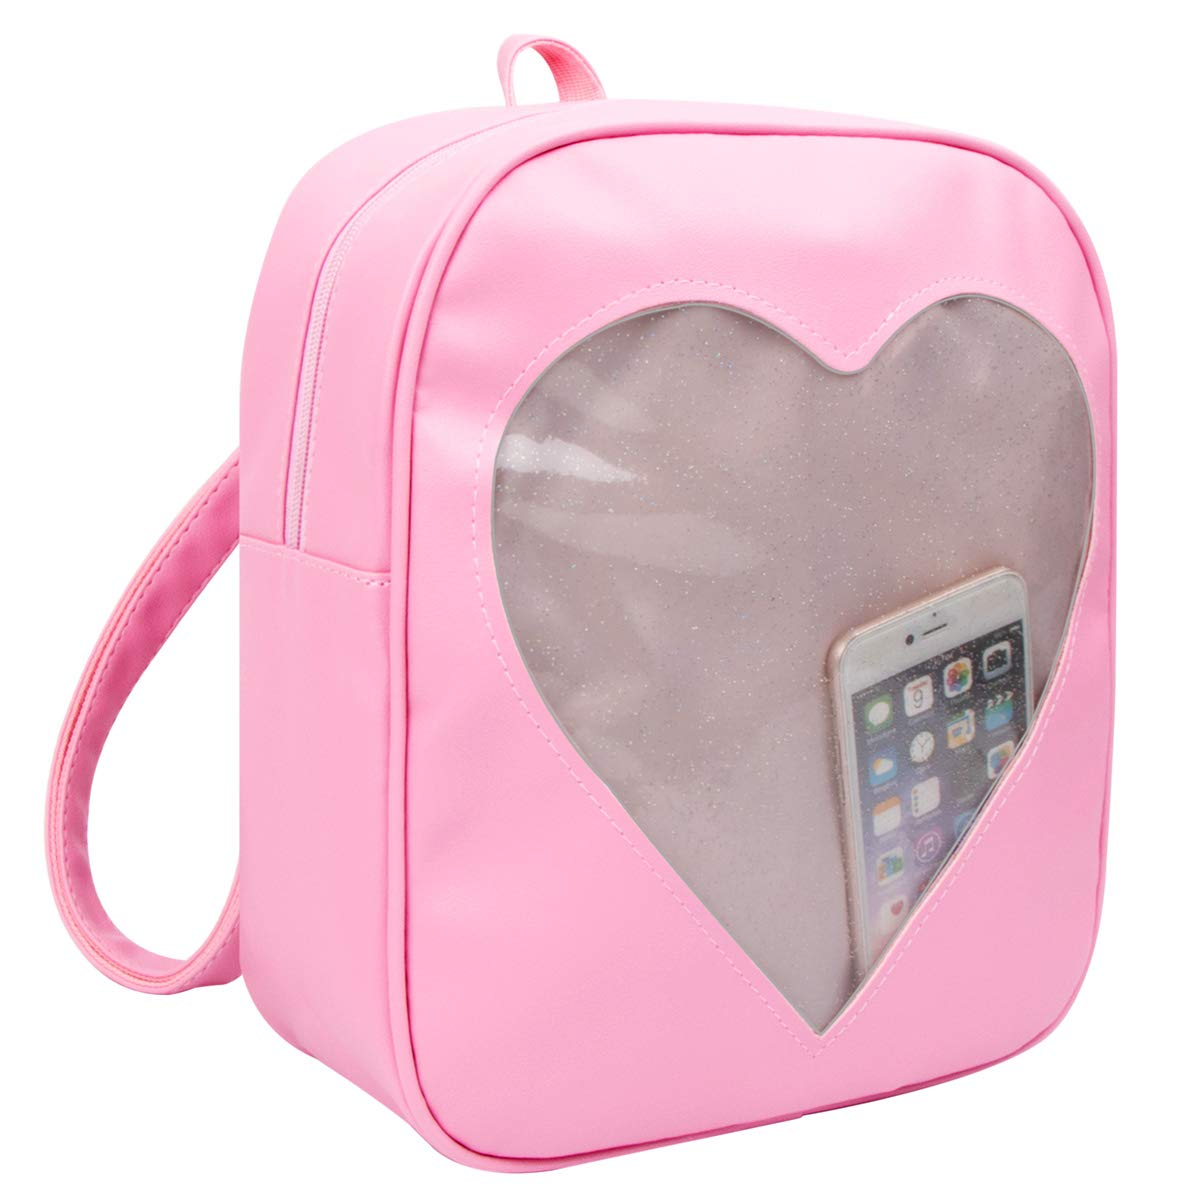 xhorizon TM FL1 Candy Leather Backpack Plastic Transparent Heart Beach Girls School Bag (Black) 201610310526F